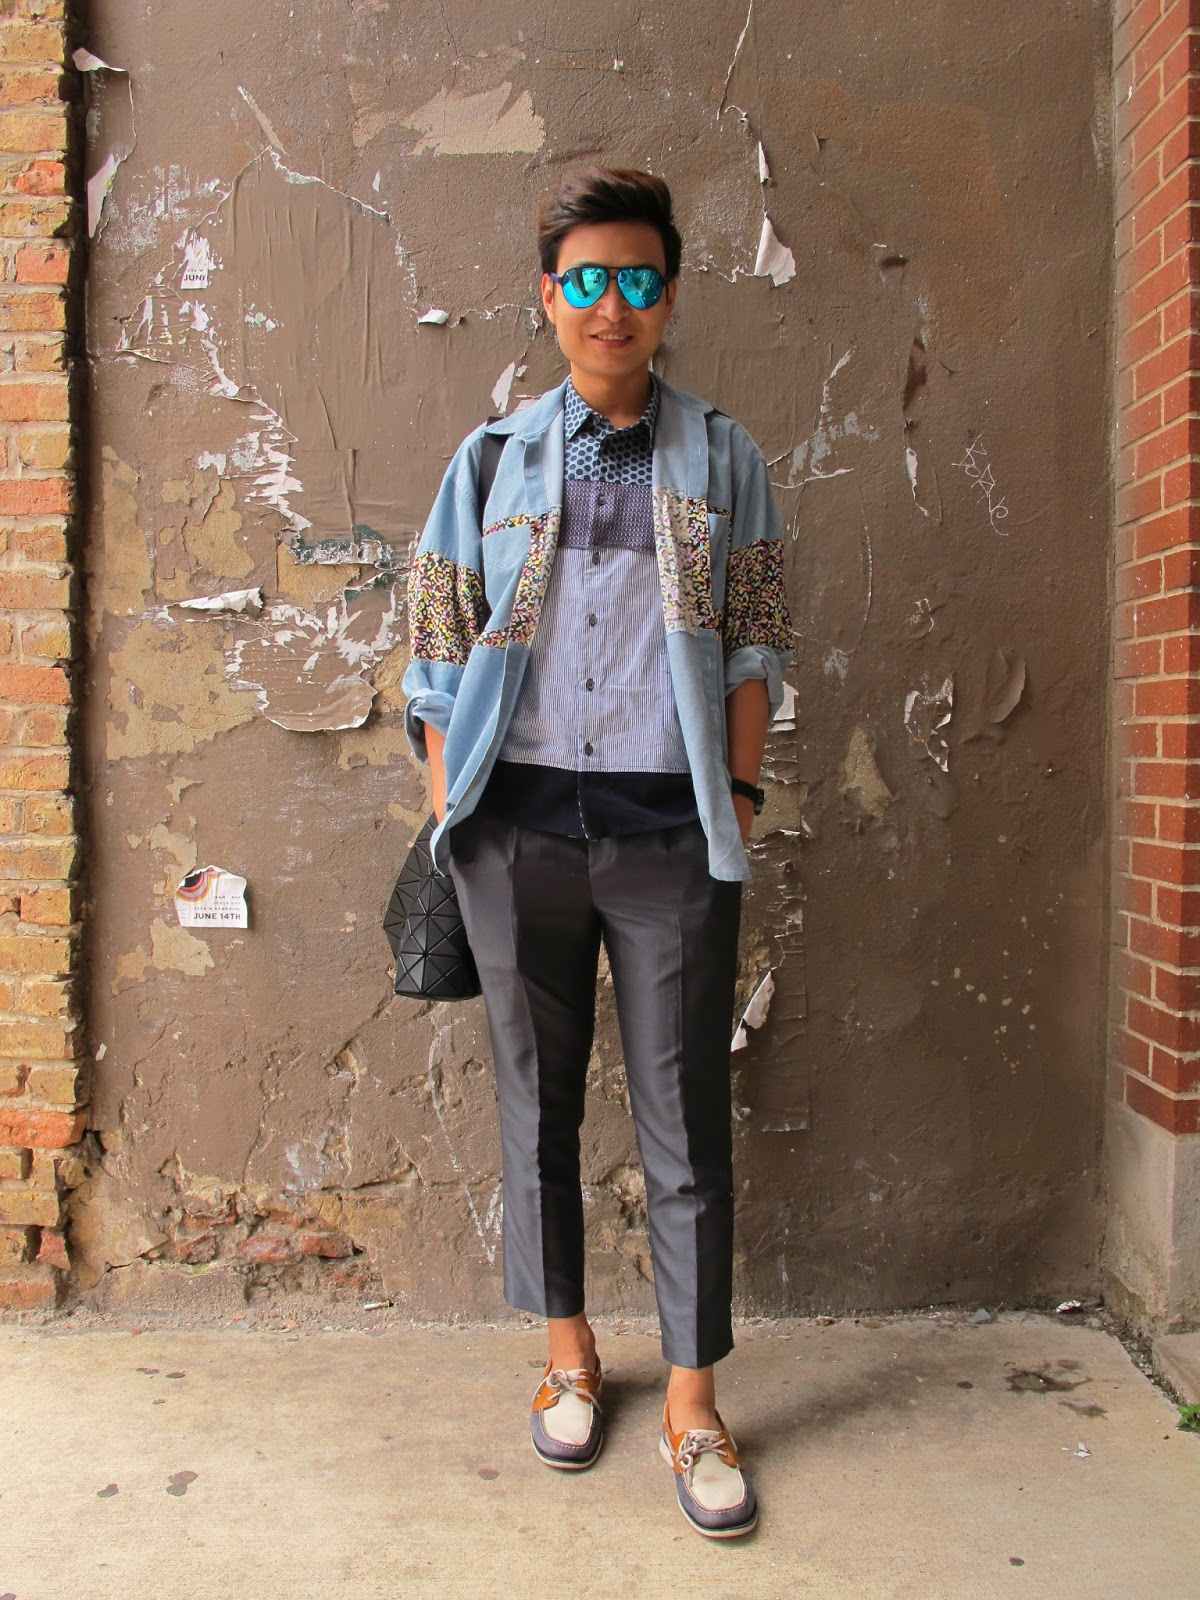 Kuang Chicago Looks A Chicago Street Style Fashion Blog